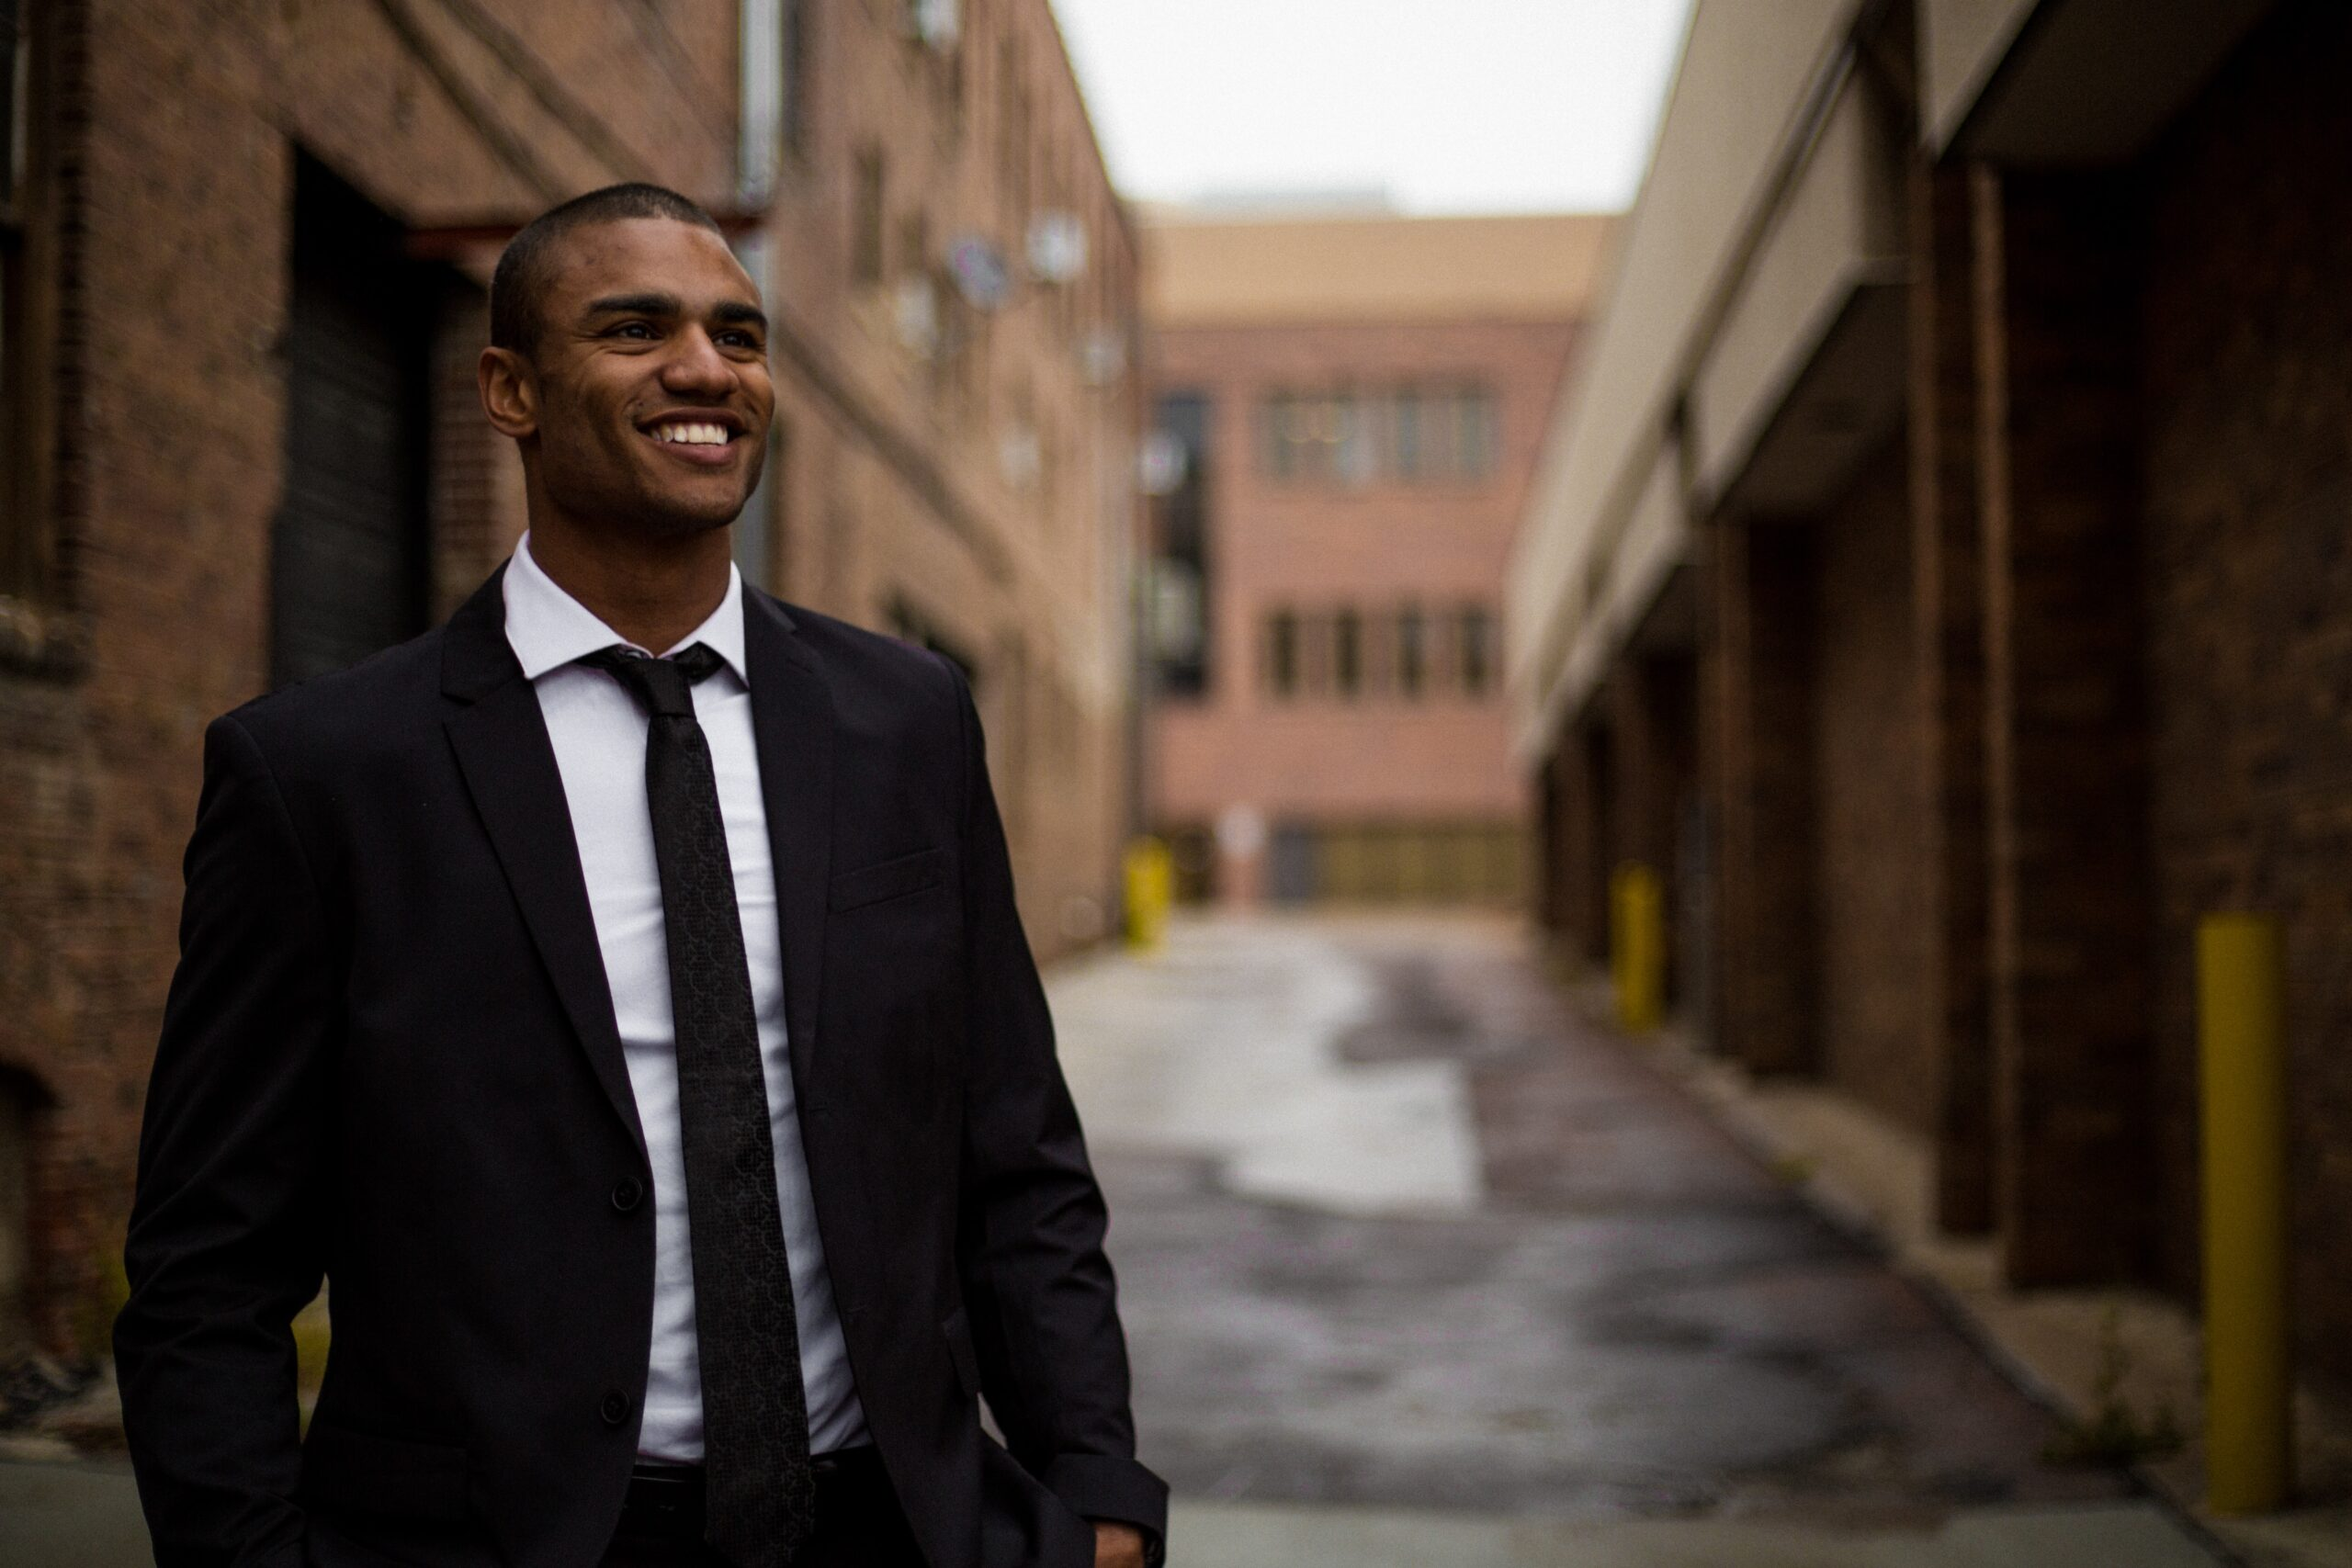 Man in a suit smiling